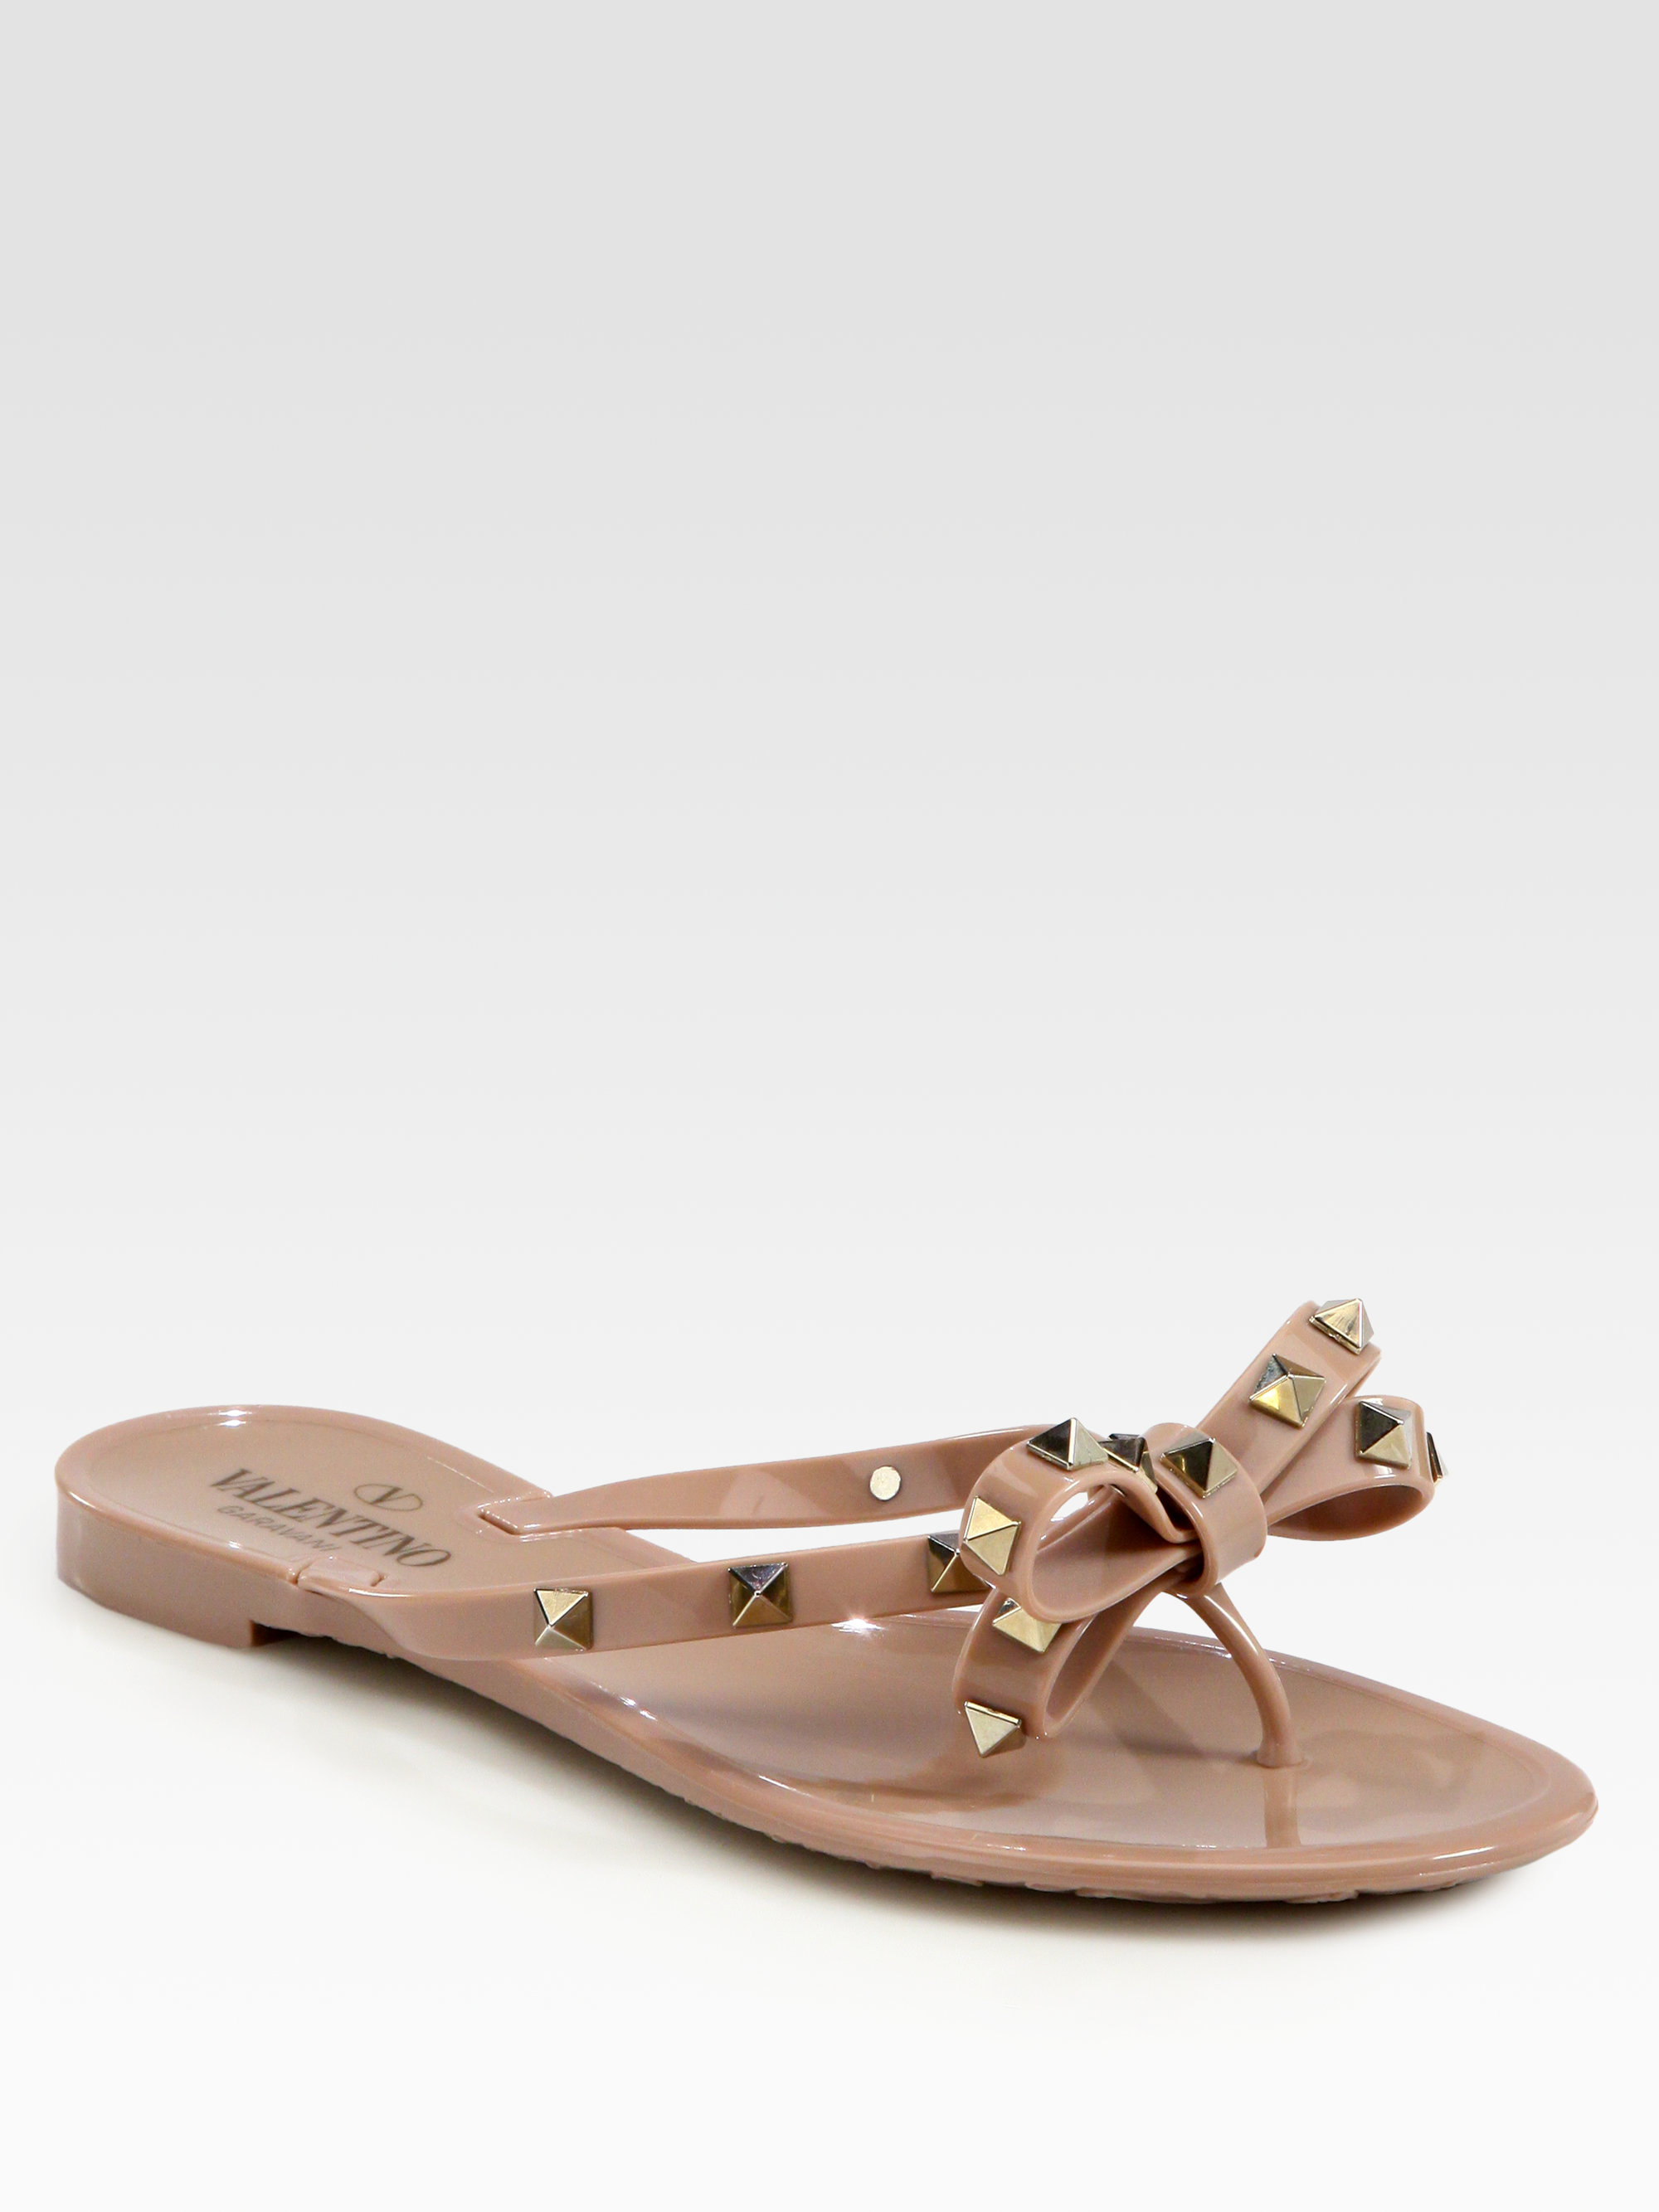 Valentino Rockstud Flops Thong Bow In Lyst Studded Black Flip Jelly 8nOw0vmN